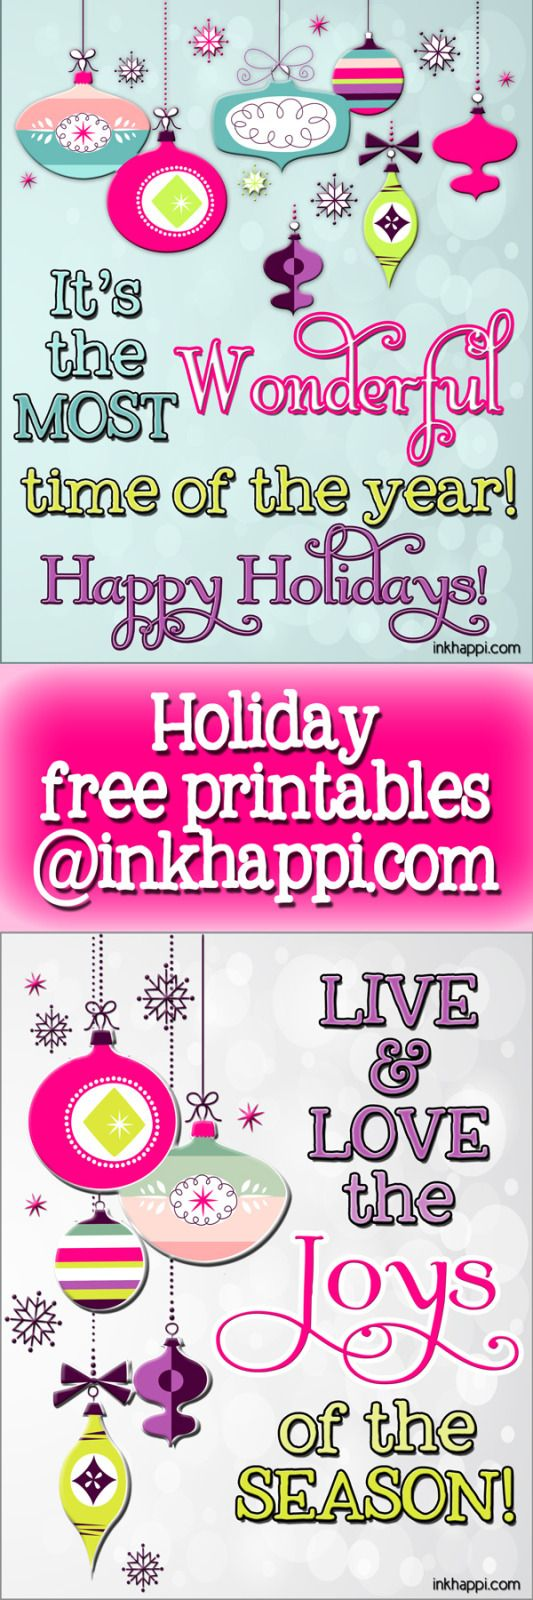 Get in the spirit of the holidays with these free prints. It's the most wonderful time of the year!